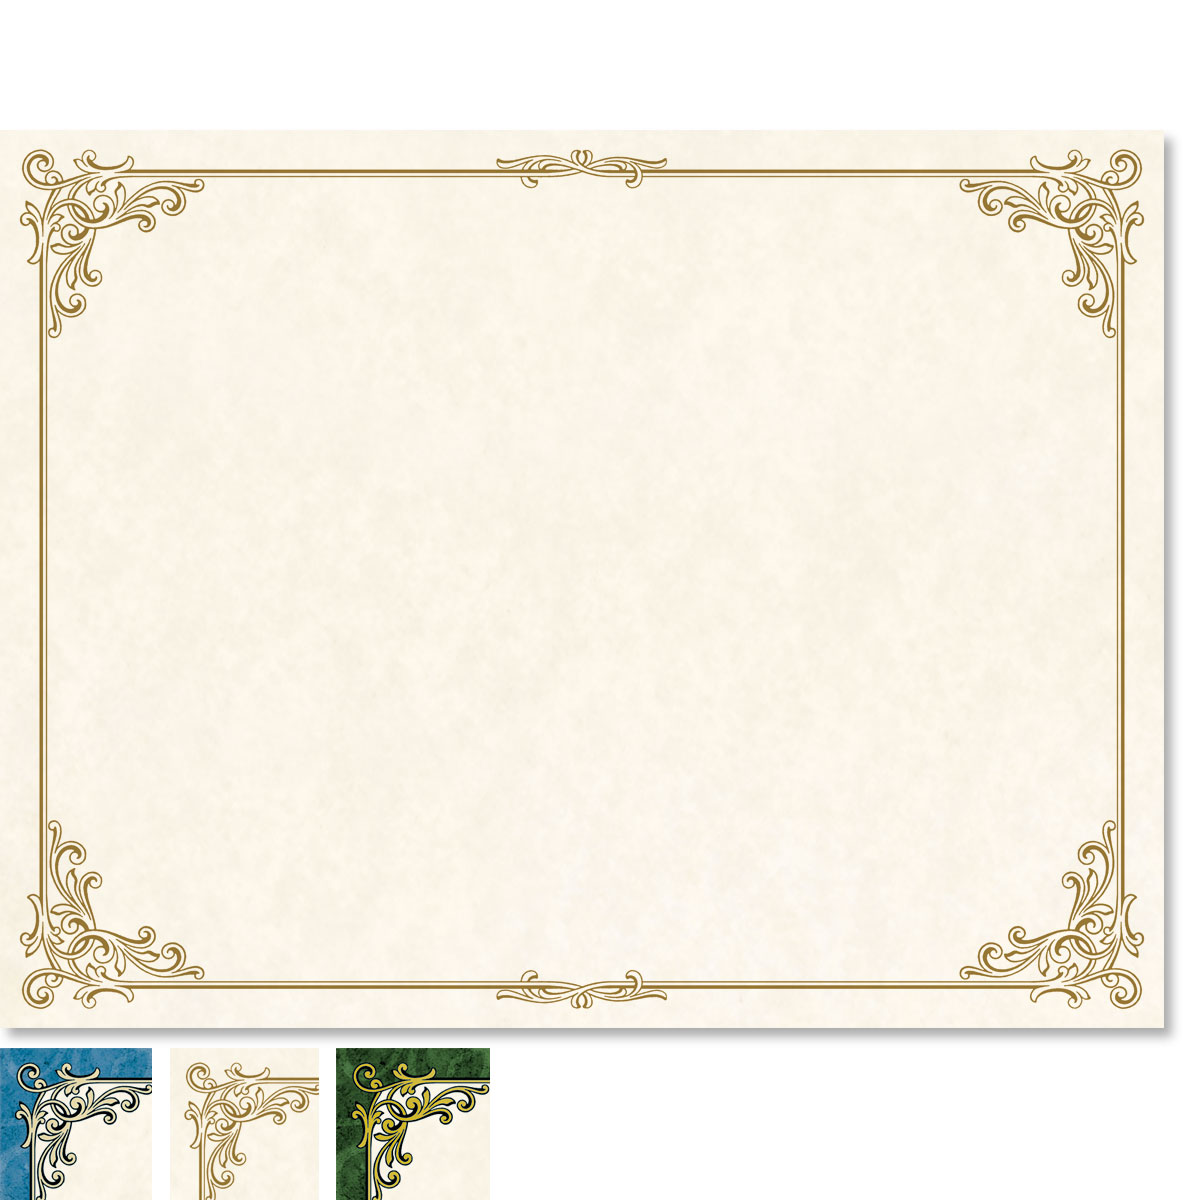 28lb gold border certicates 100 certificates great papers